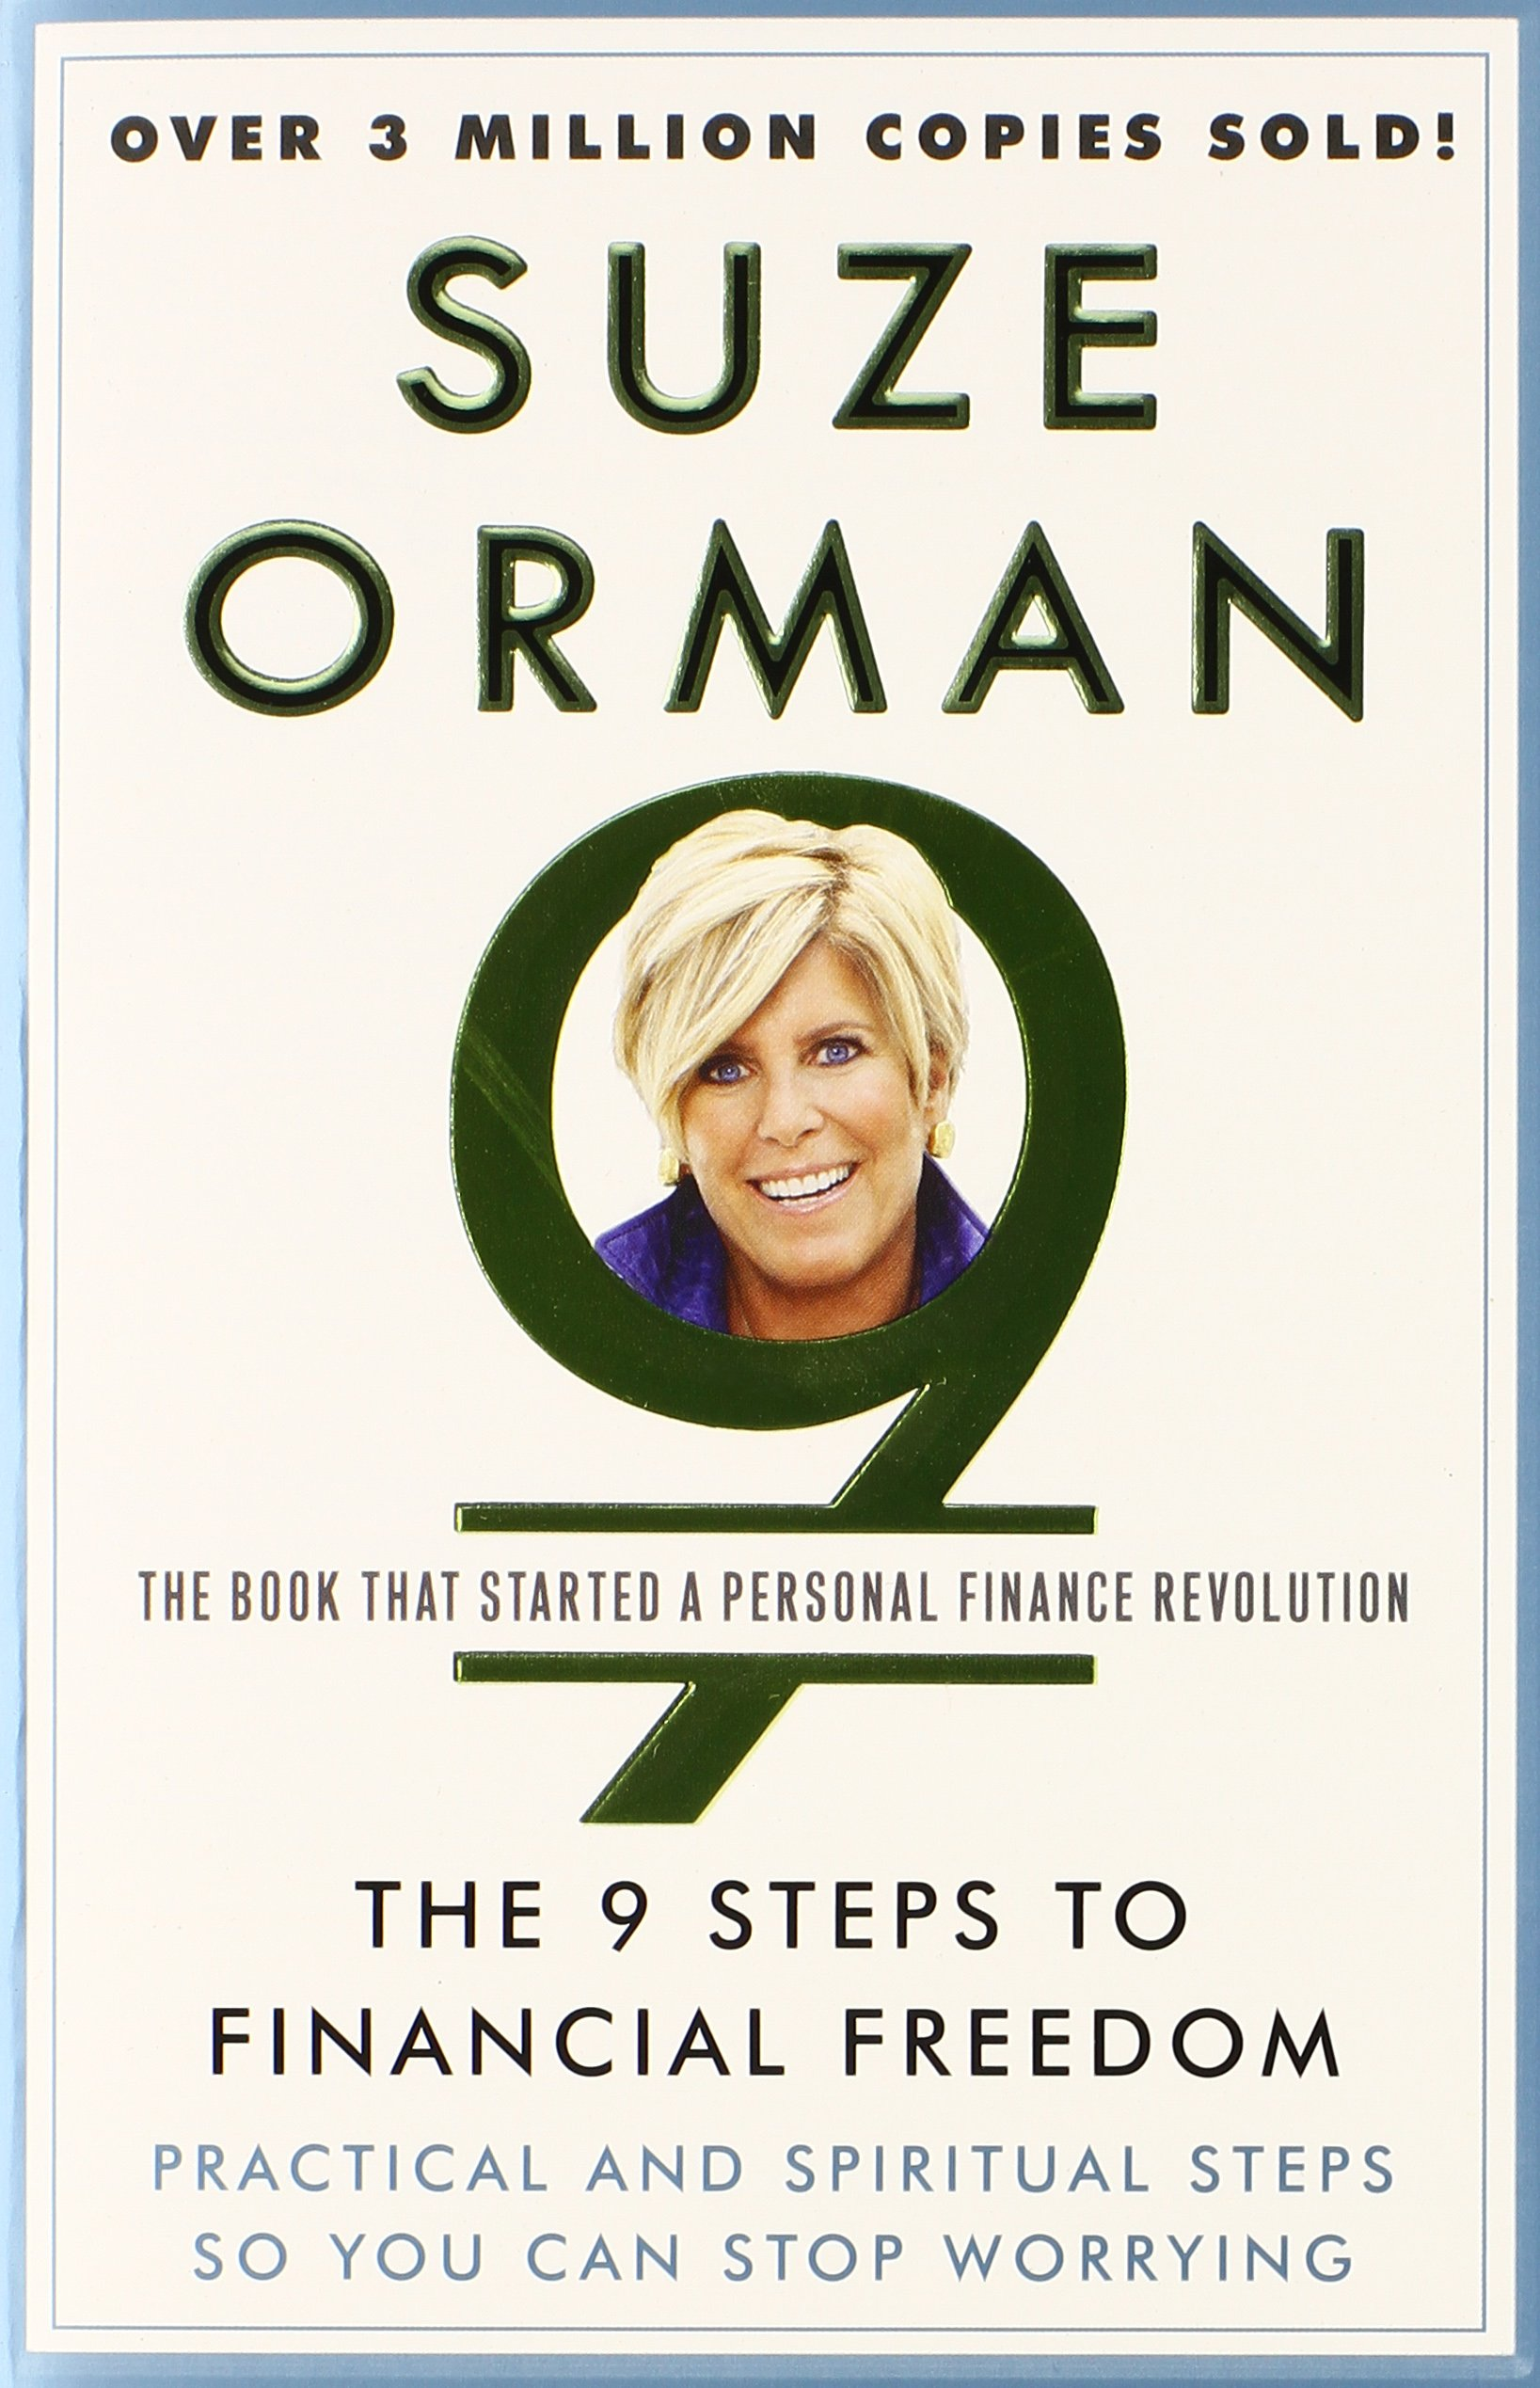 The 9 steps to financial freedom practical and spiritual steps so the 9 steps to financial freedom practical and spiritual steps so you can stop worrying suze orman 9780307345844 amazon books solutioingenieria Images